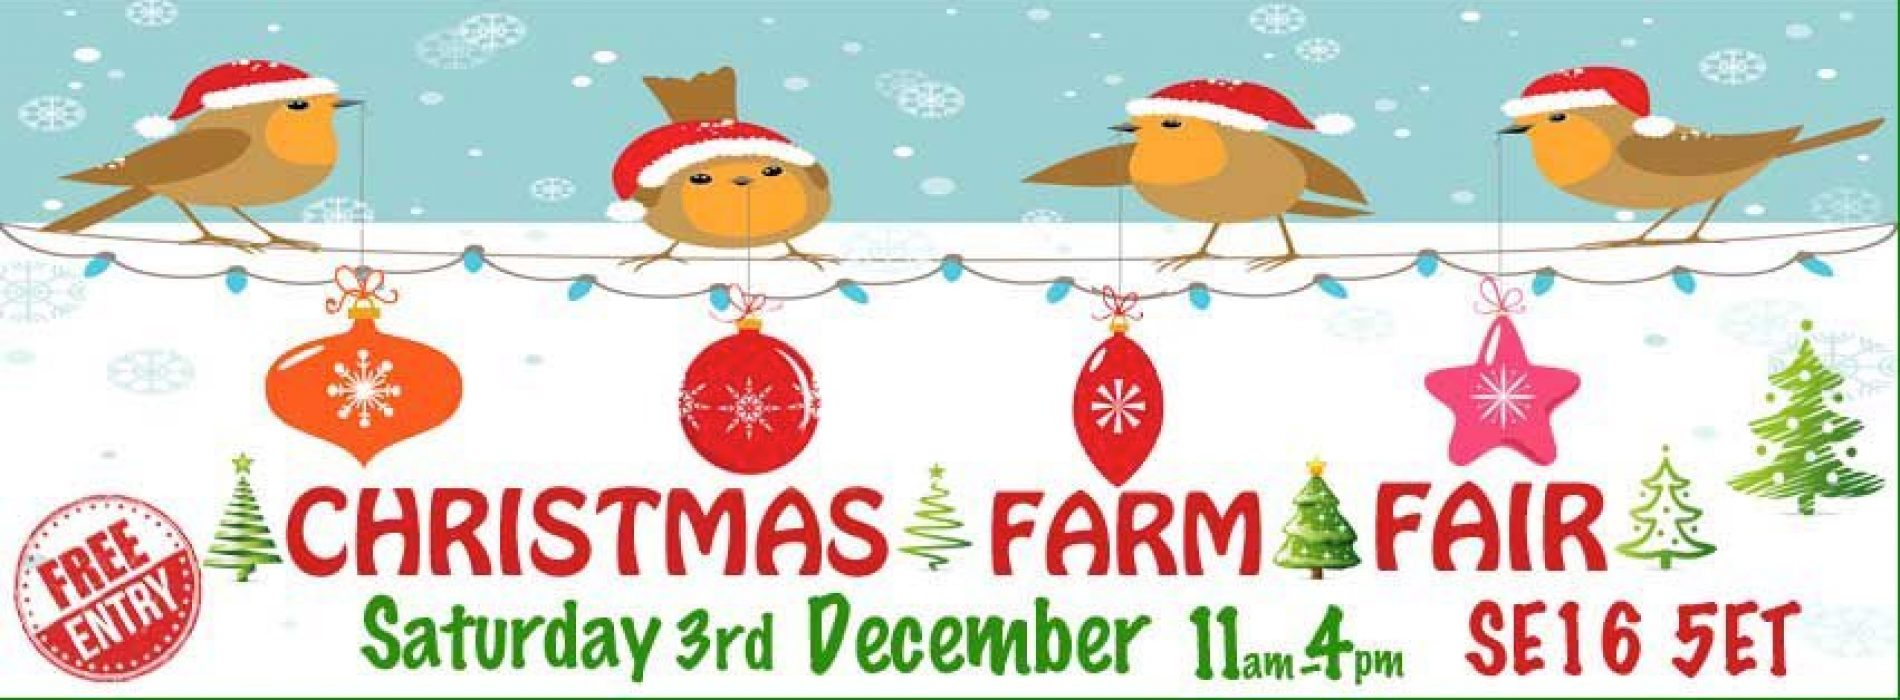 Surrey Docks Farm Christmas Fair 2016